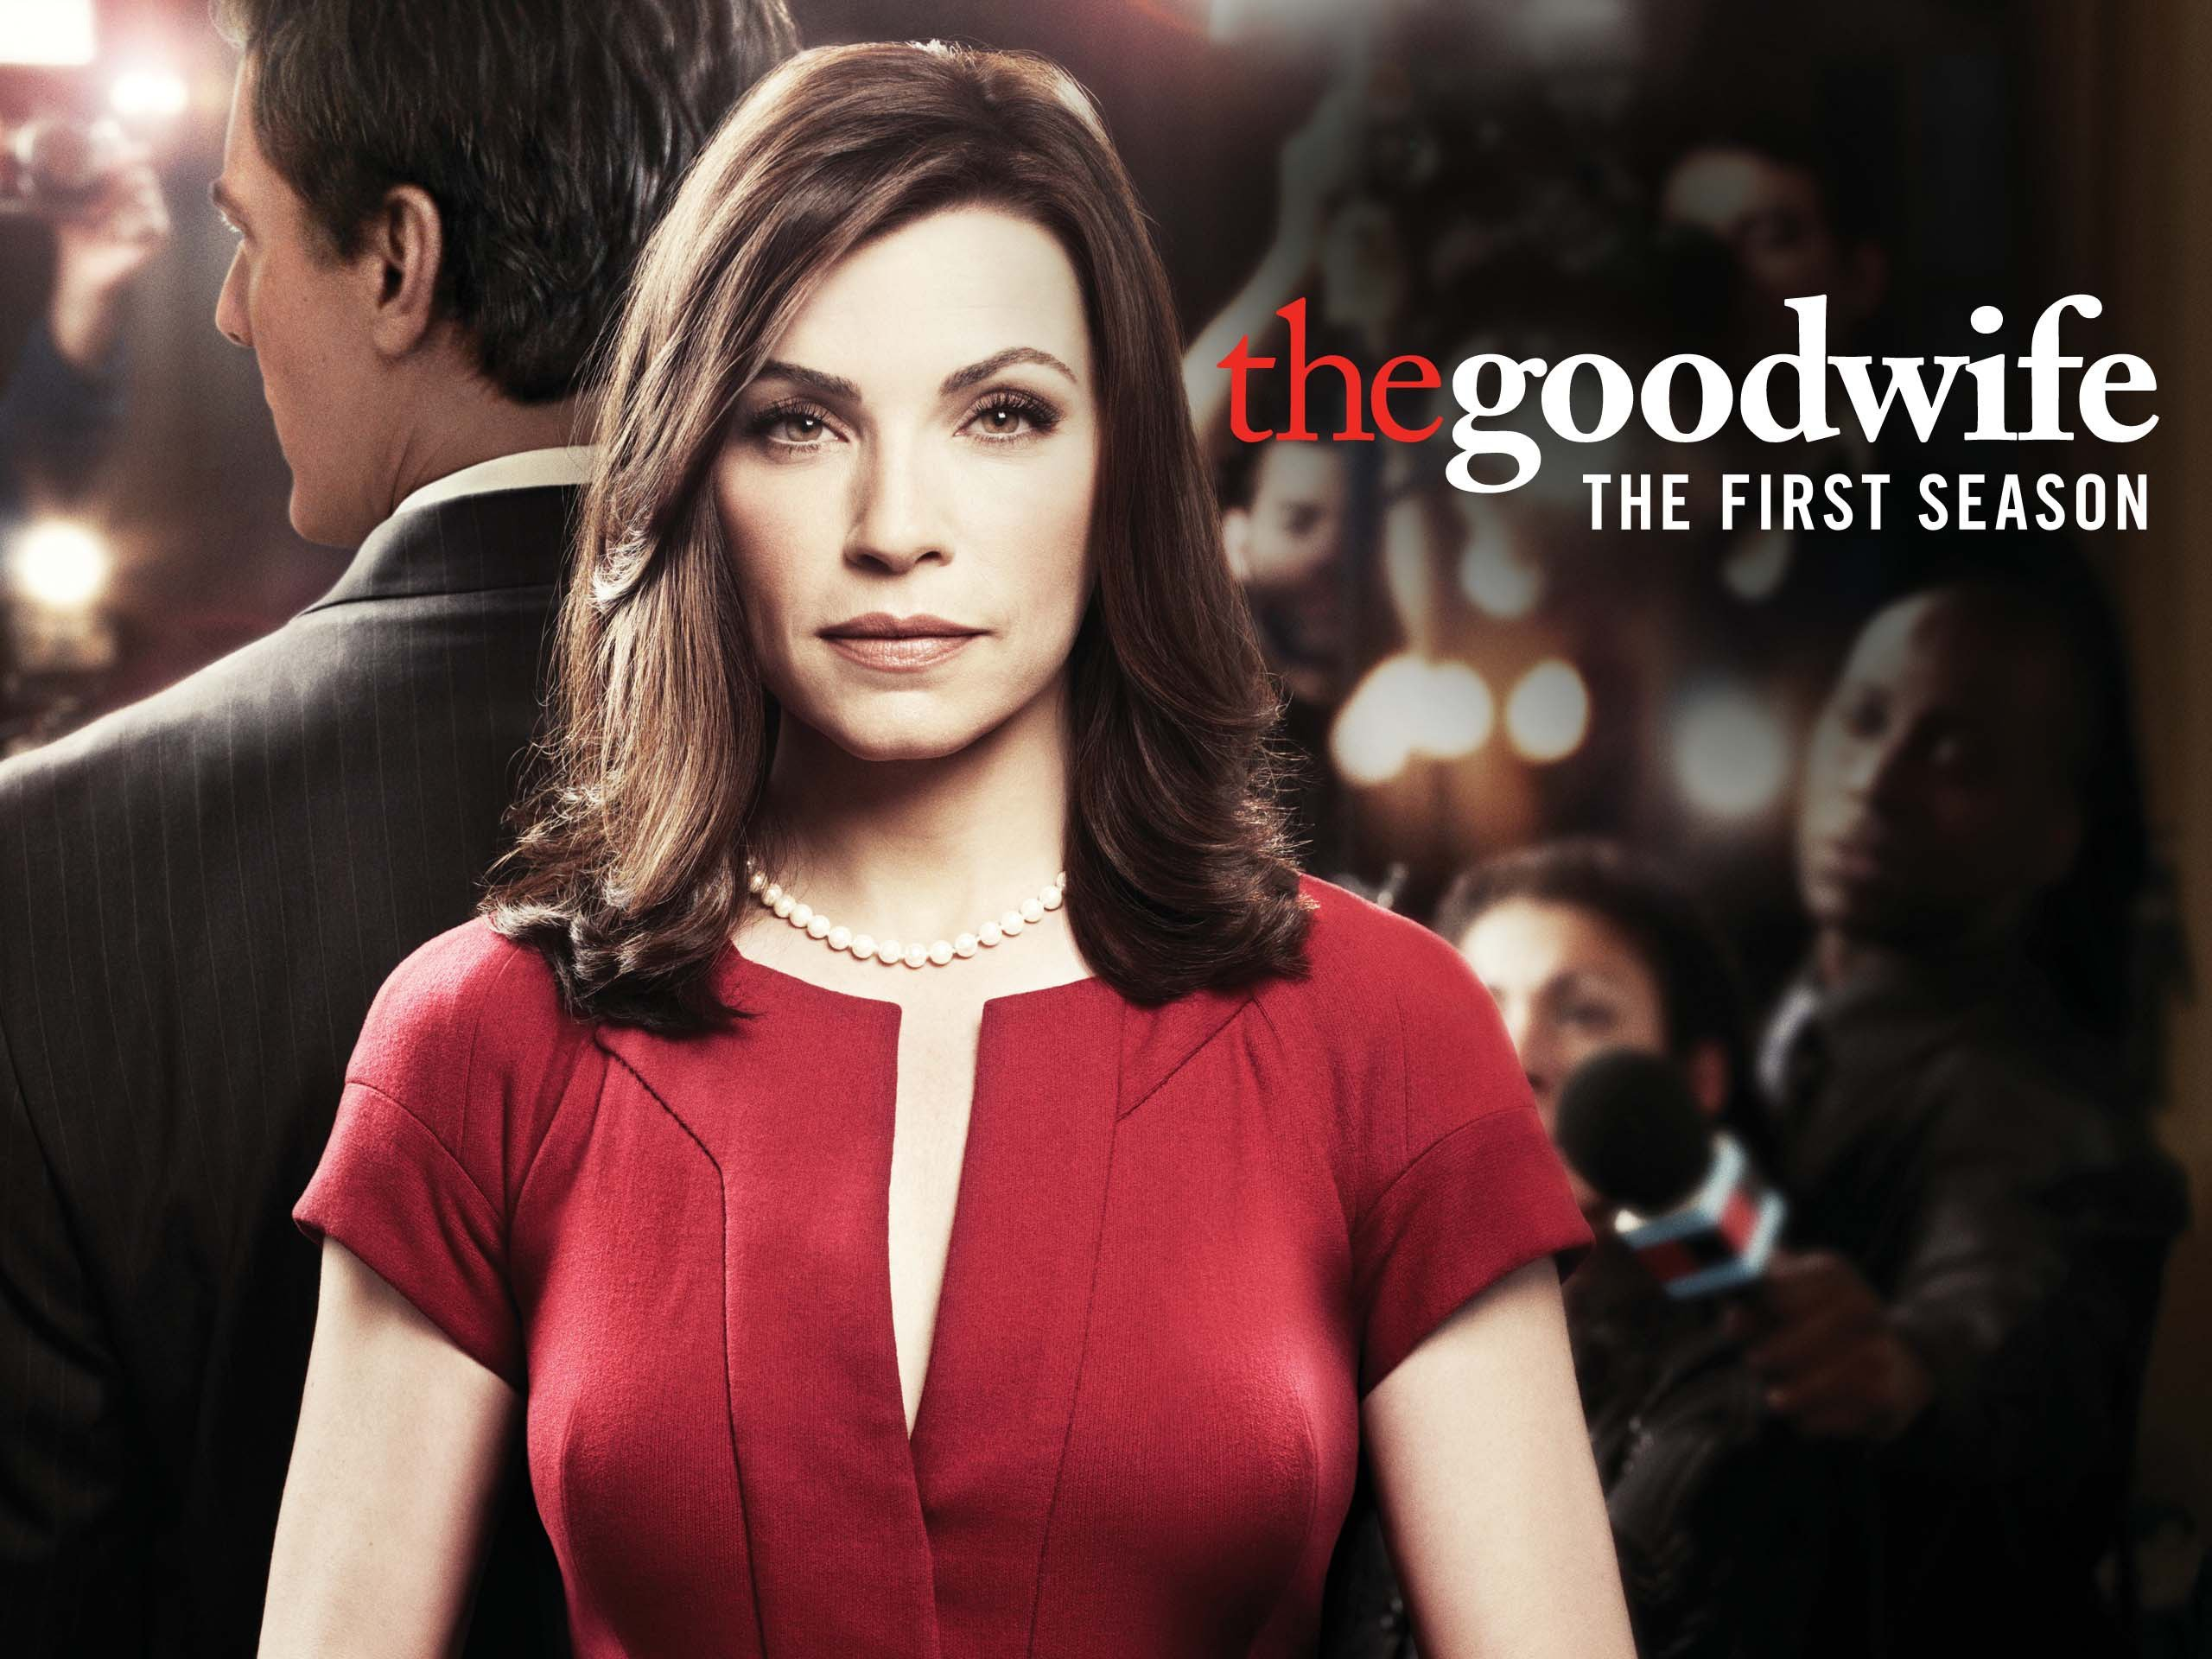 goodwife-amazon